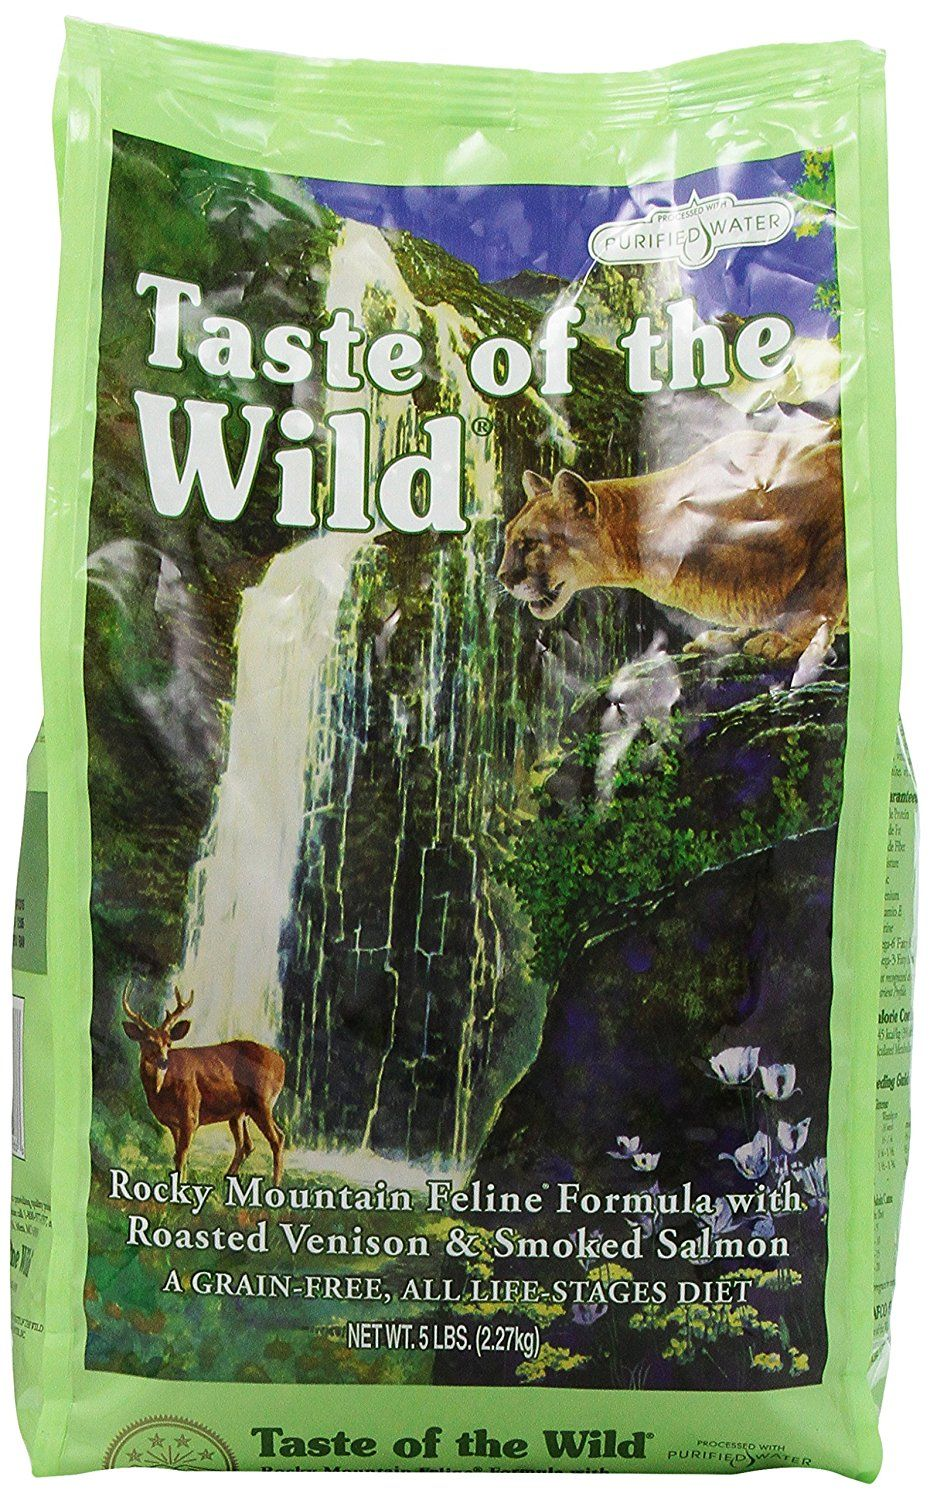 Taste Of The Wild Cat Food Click Image For More Details Dry